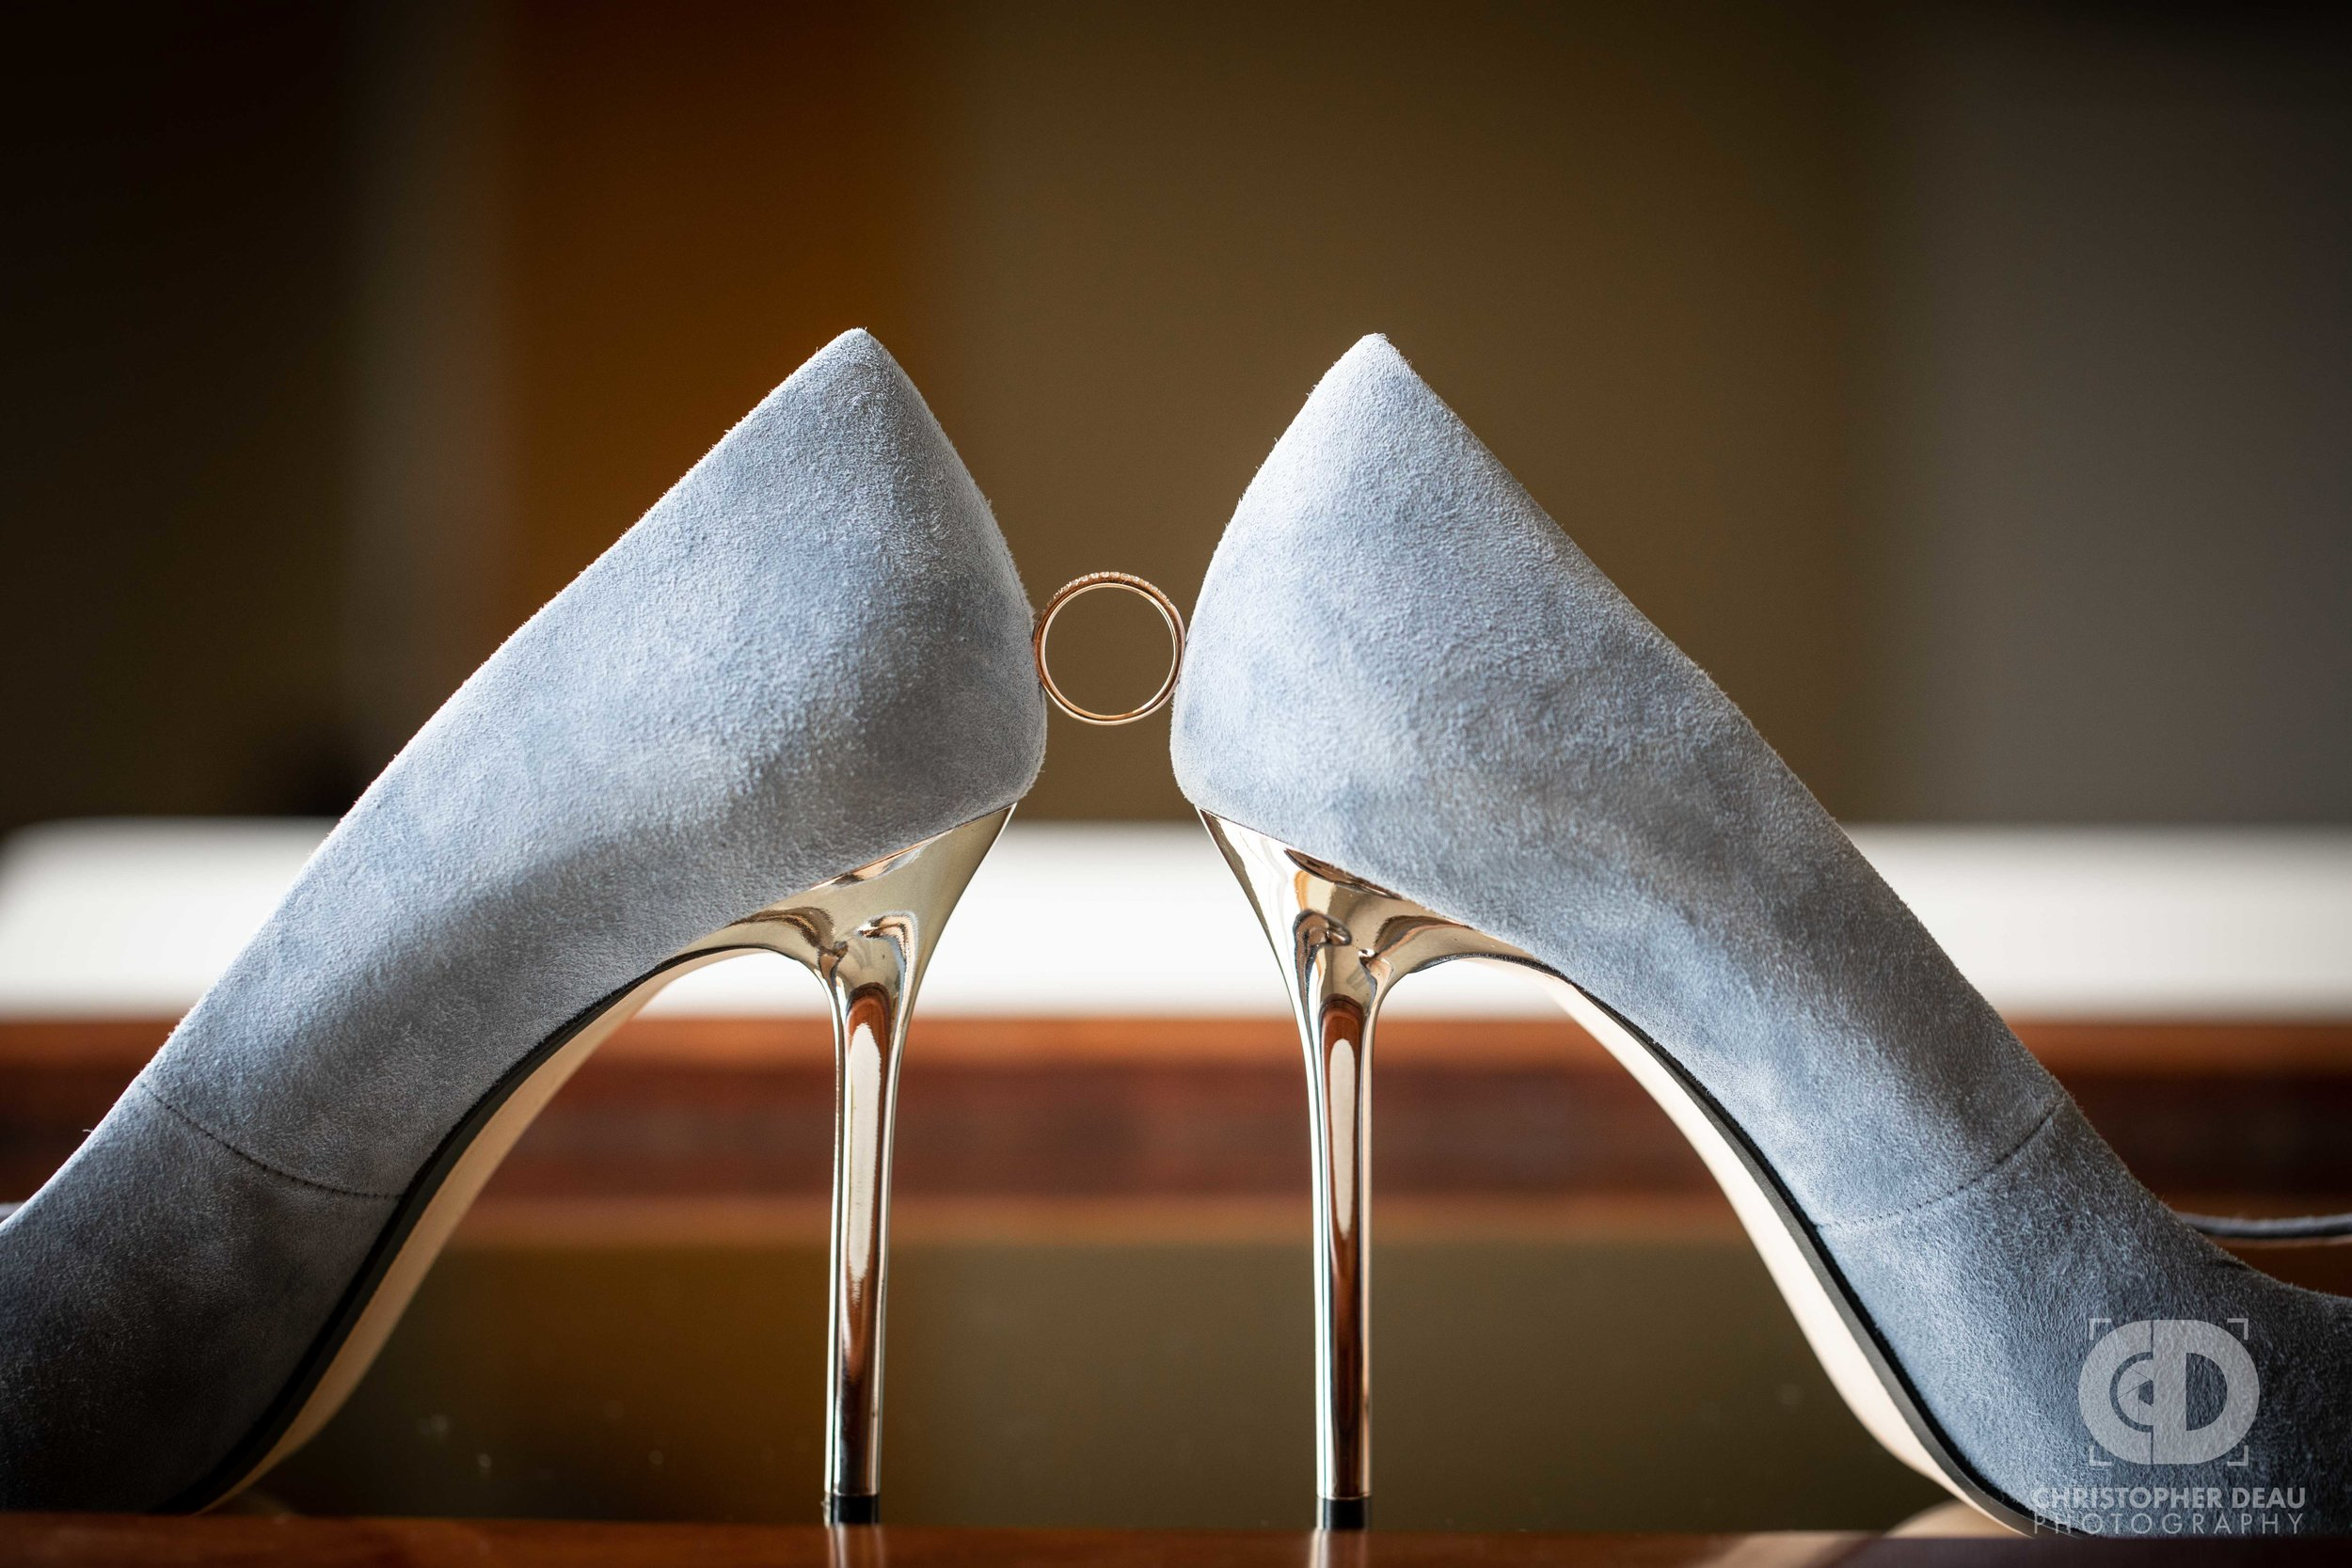 wedding ring wedged between shoes